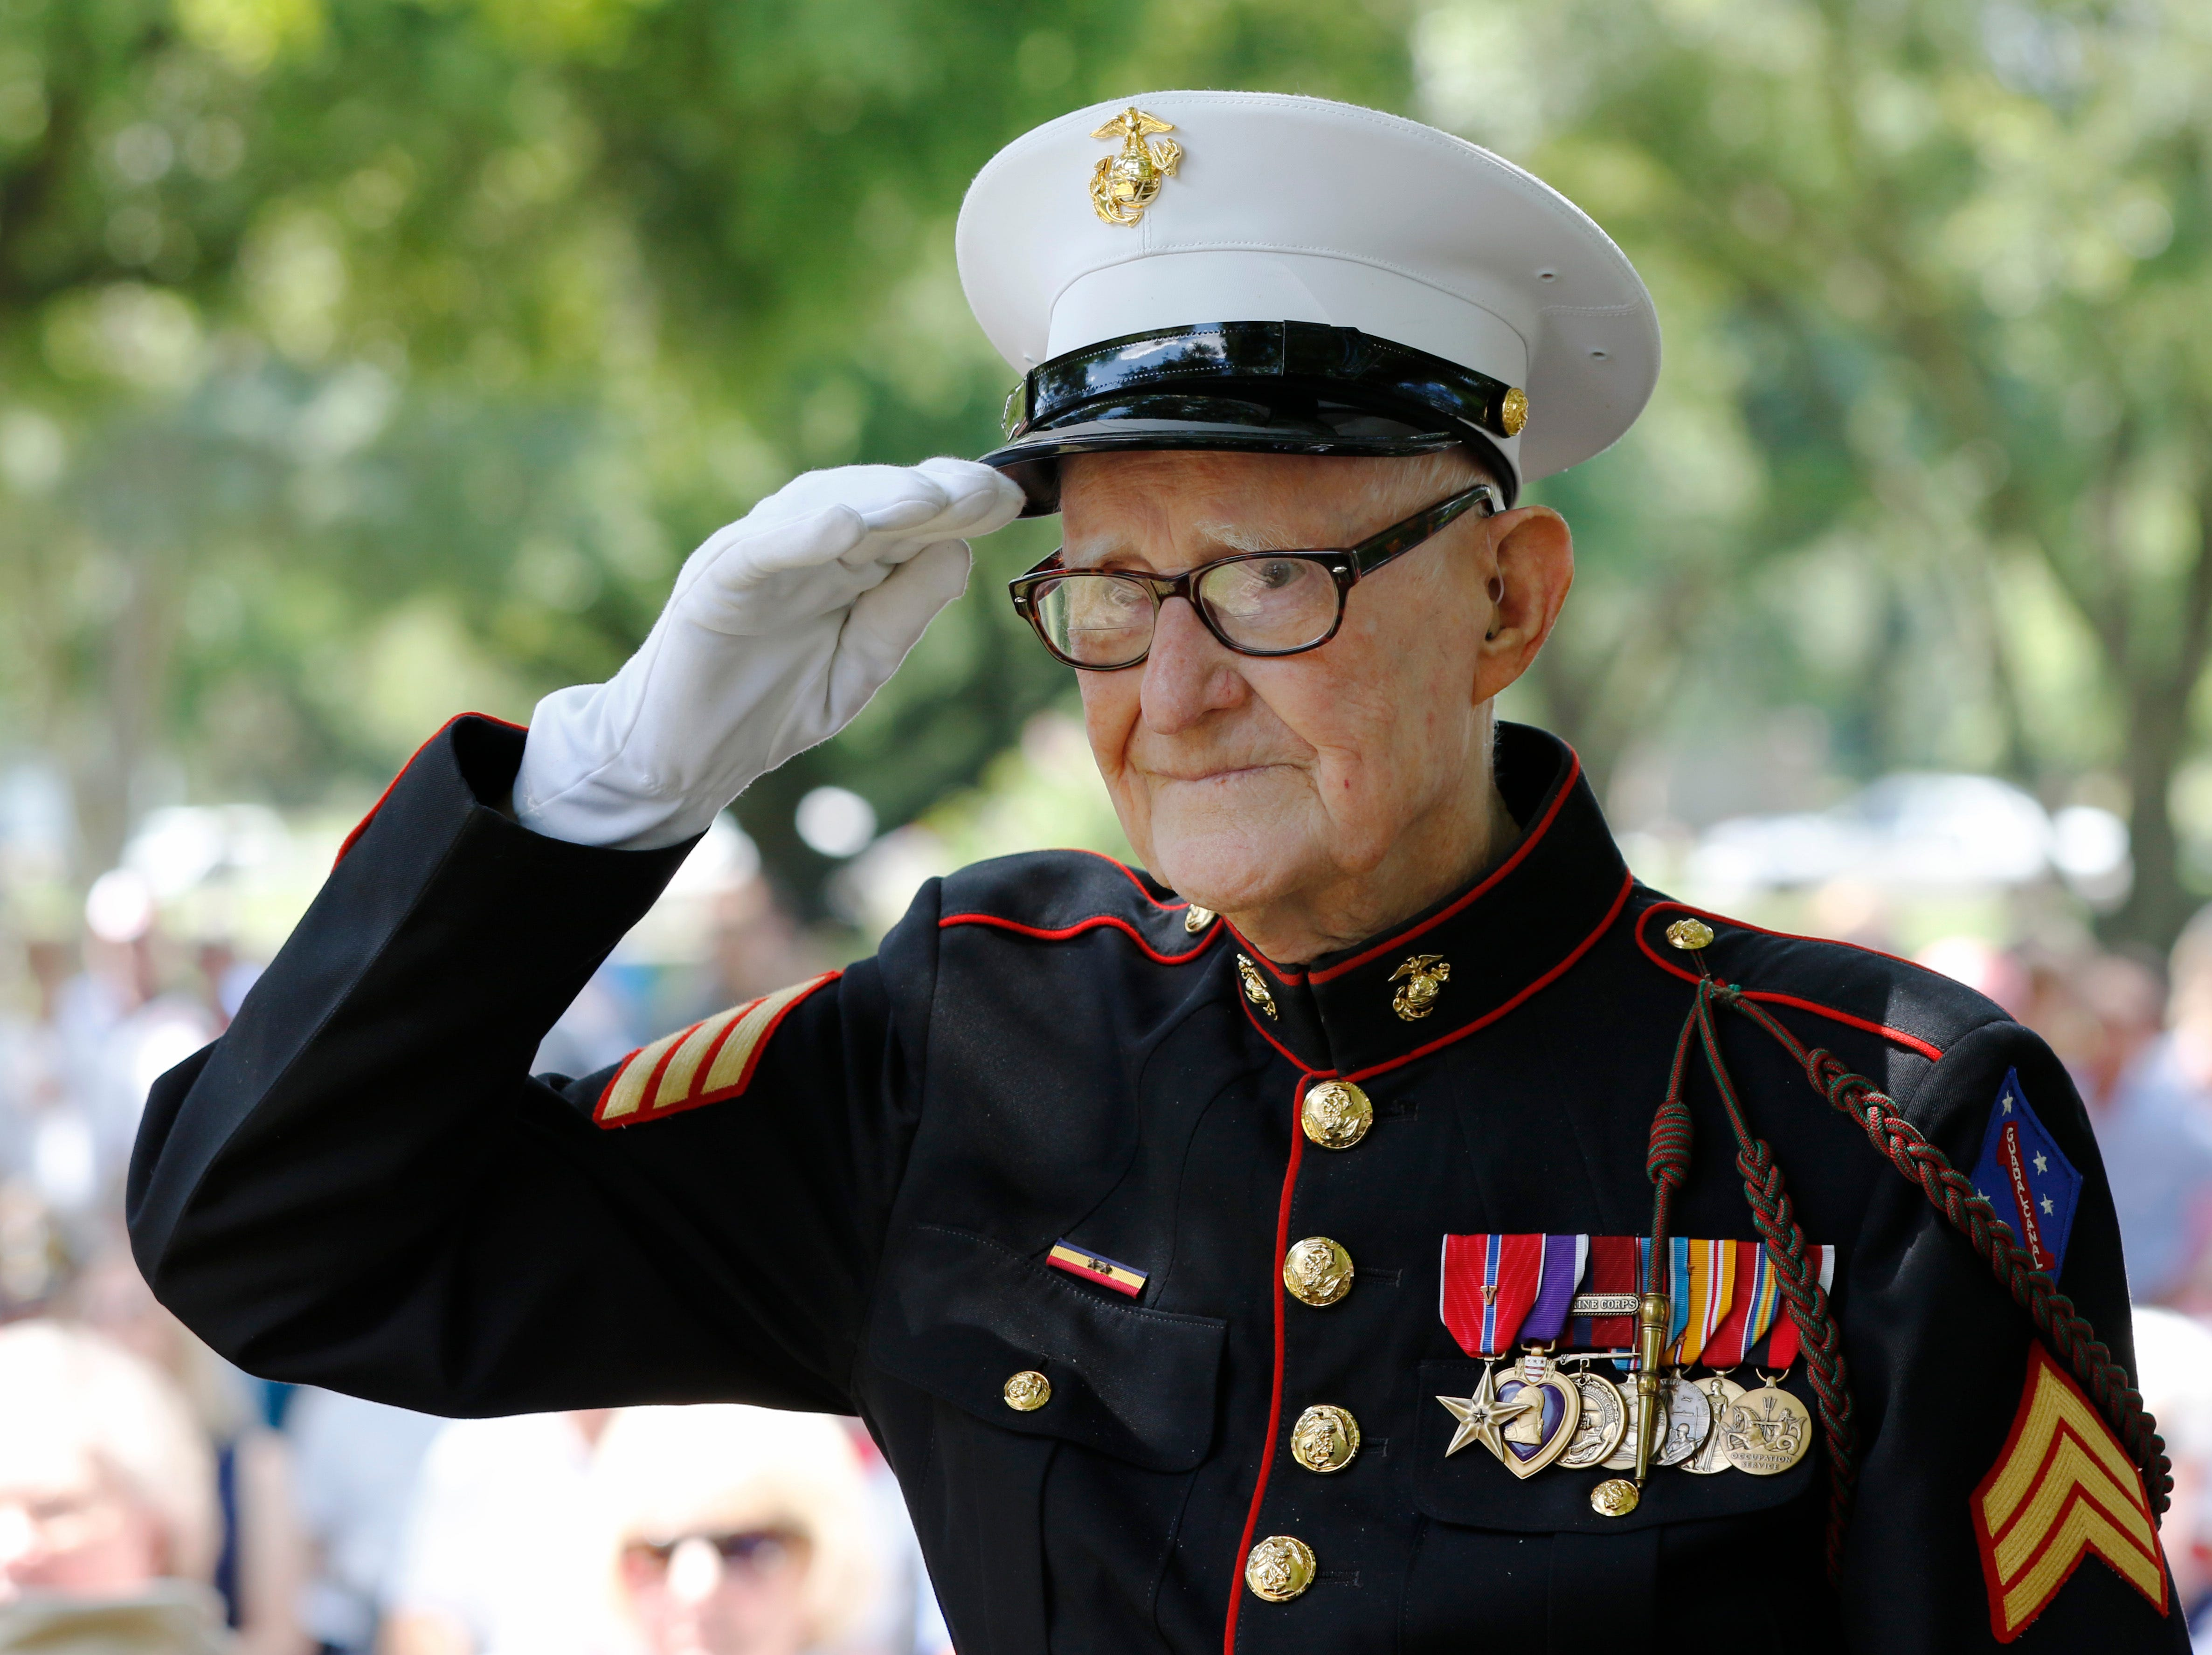 """In a May 30, 2016 photo, U.S. Marine veteran R. V. Burgin, 93, salutes during the 76th Annual Memorial Day Service at Restland Memorial Park in Dallas. Burgin, whose book about grueling jungle combat during WWII became a basis for the HBO miniseries """"The Pacific"""" died April 6, 2019 at his home in Texas. He was 96."""